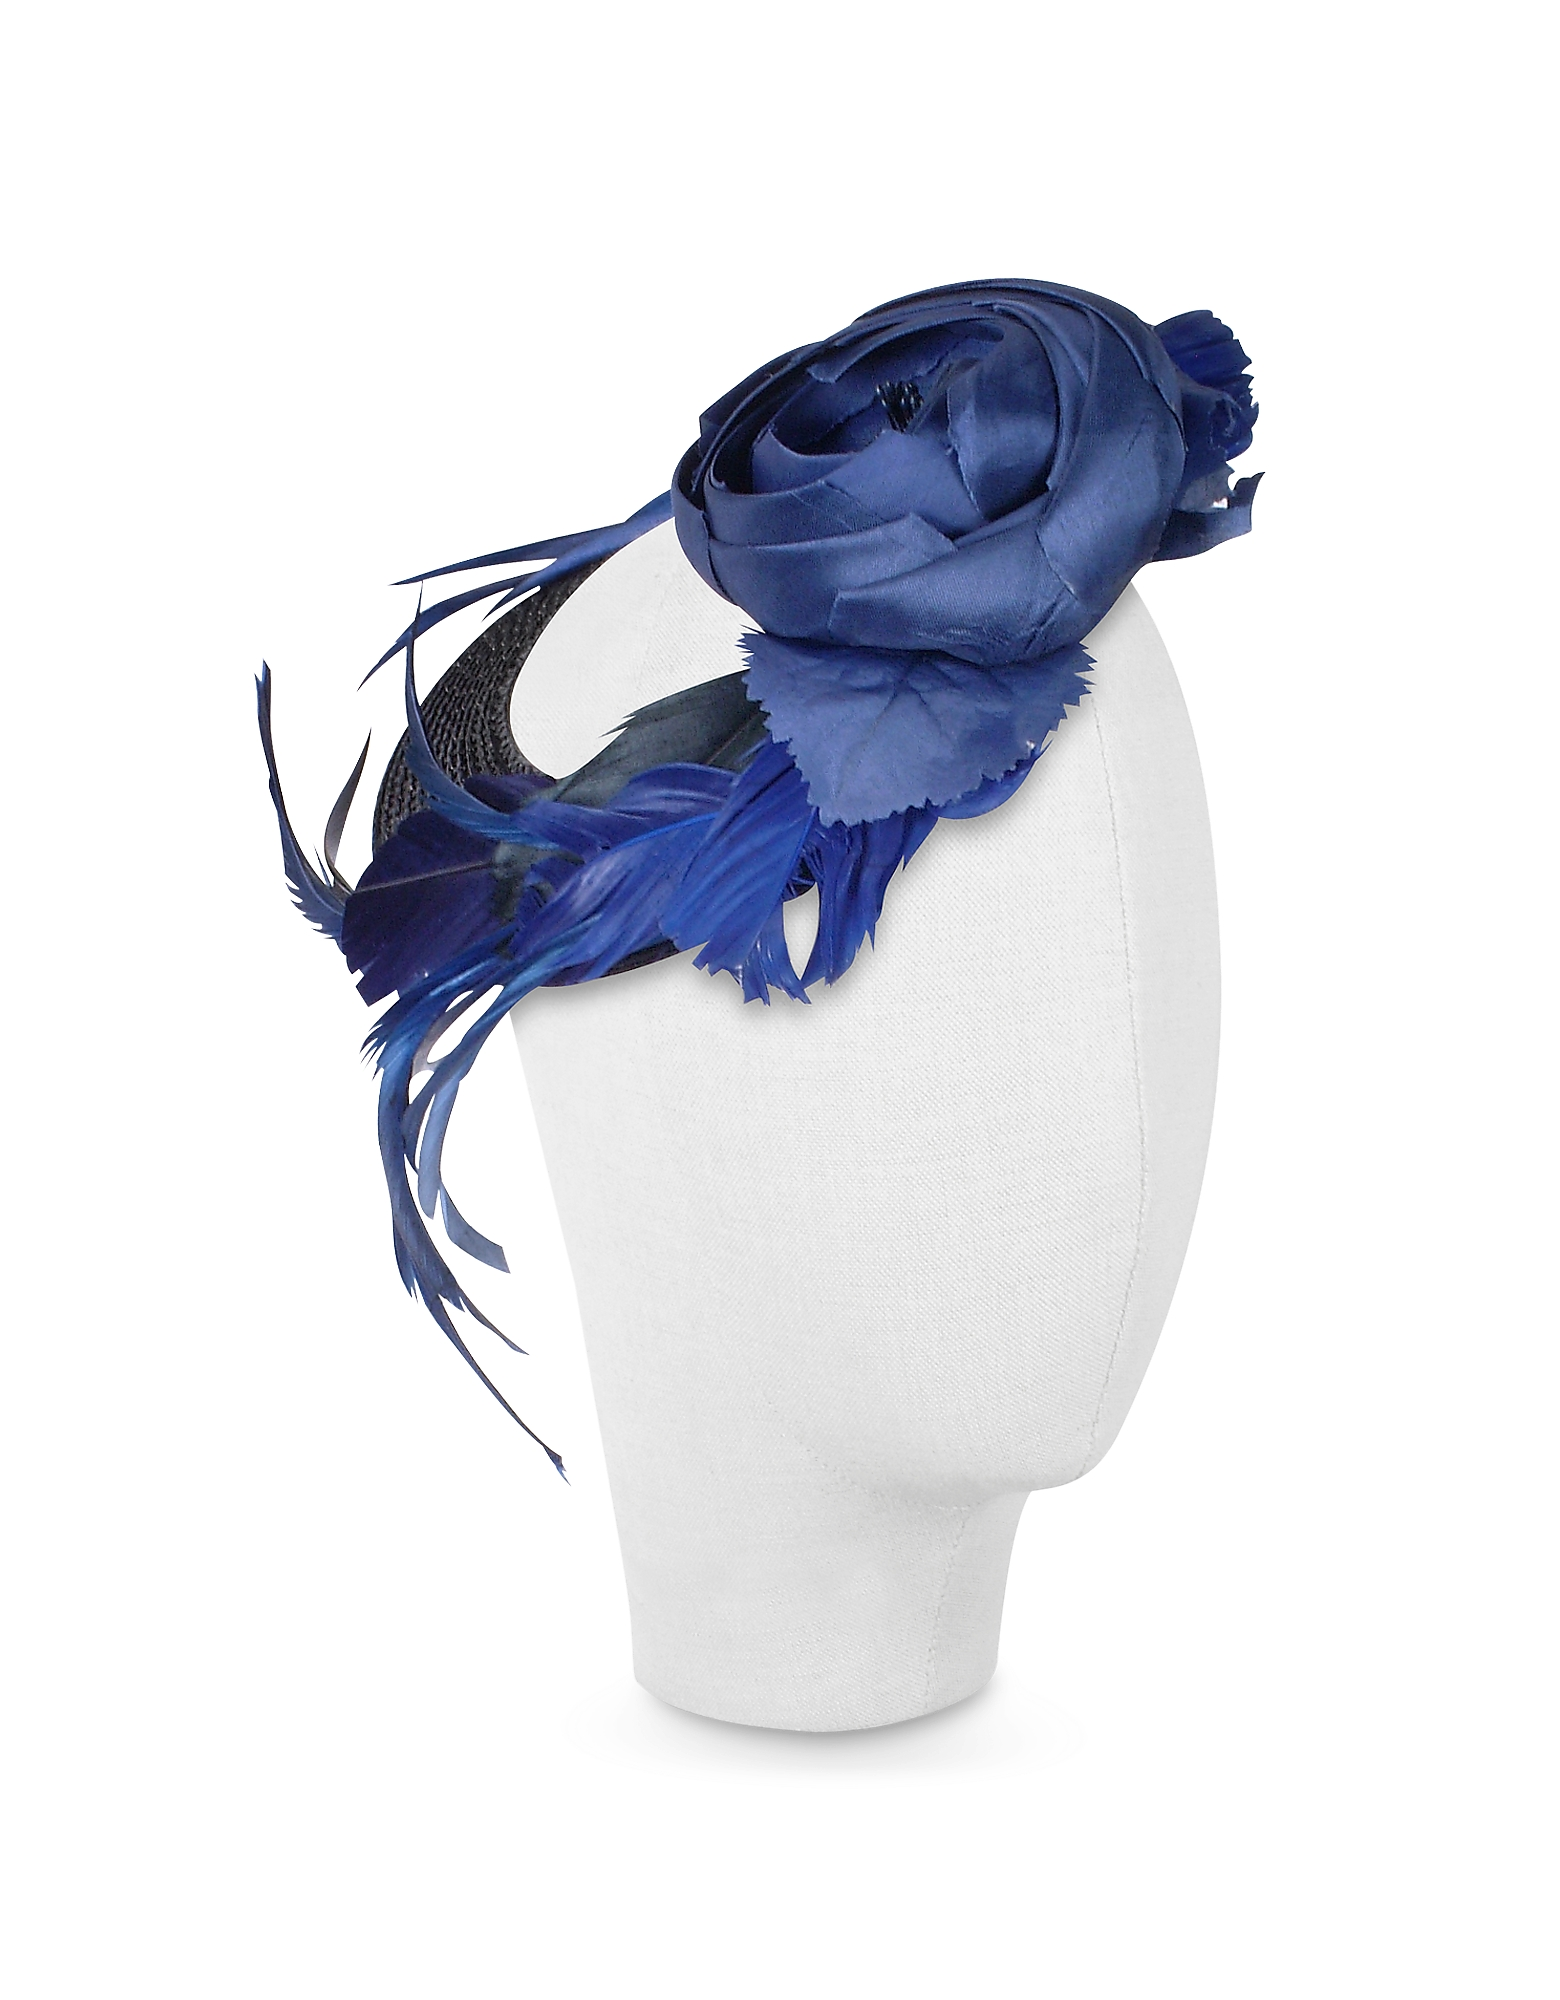 Nana' Women's Hats, Alba - Night Blue Flower Feather Hat Disc